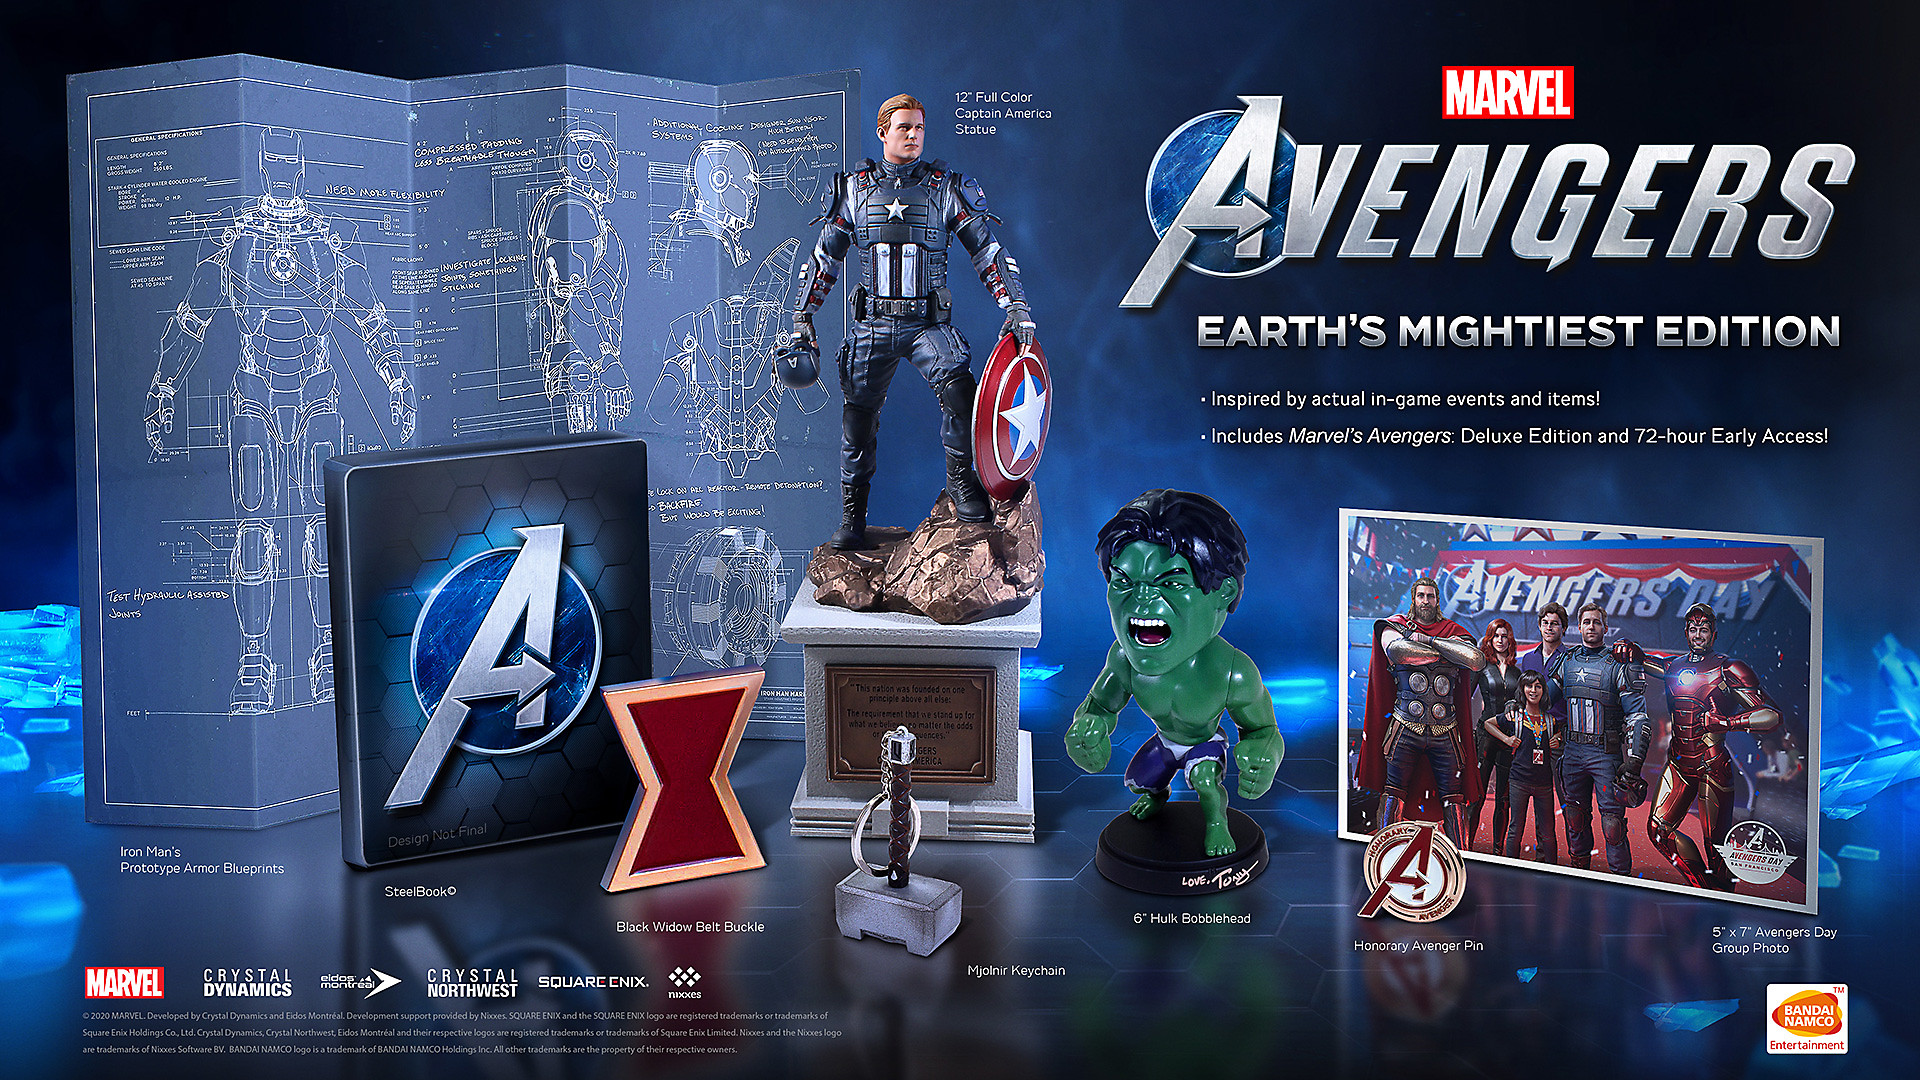 Marvel's Avengers EARTH's MIGHTIEST EDITION Beauty Shot